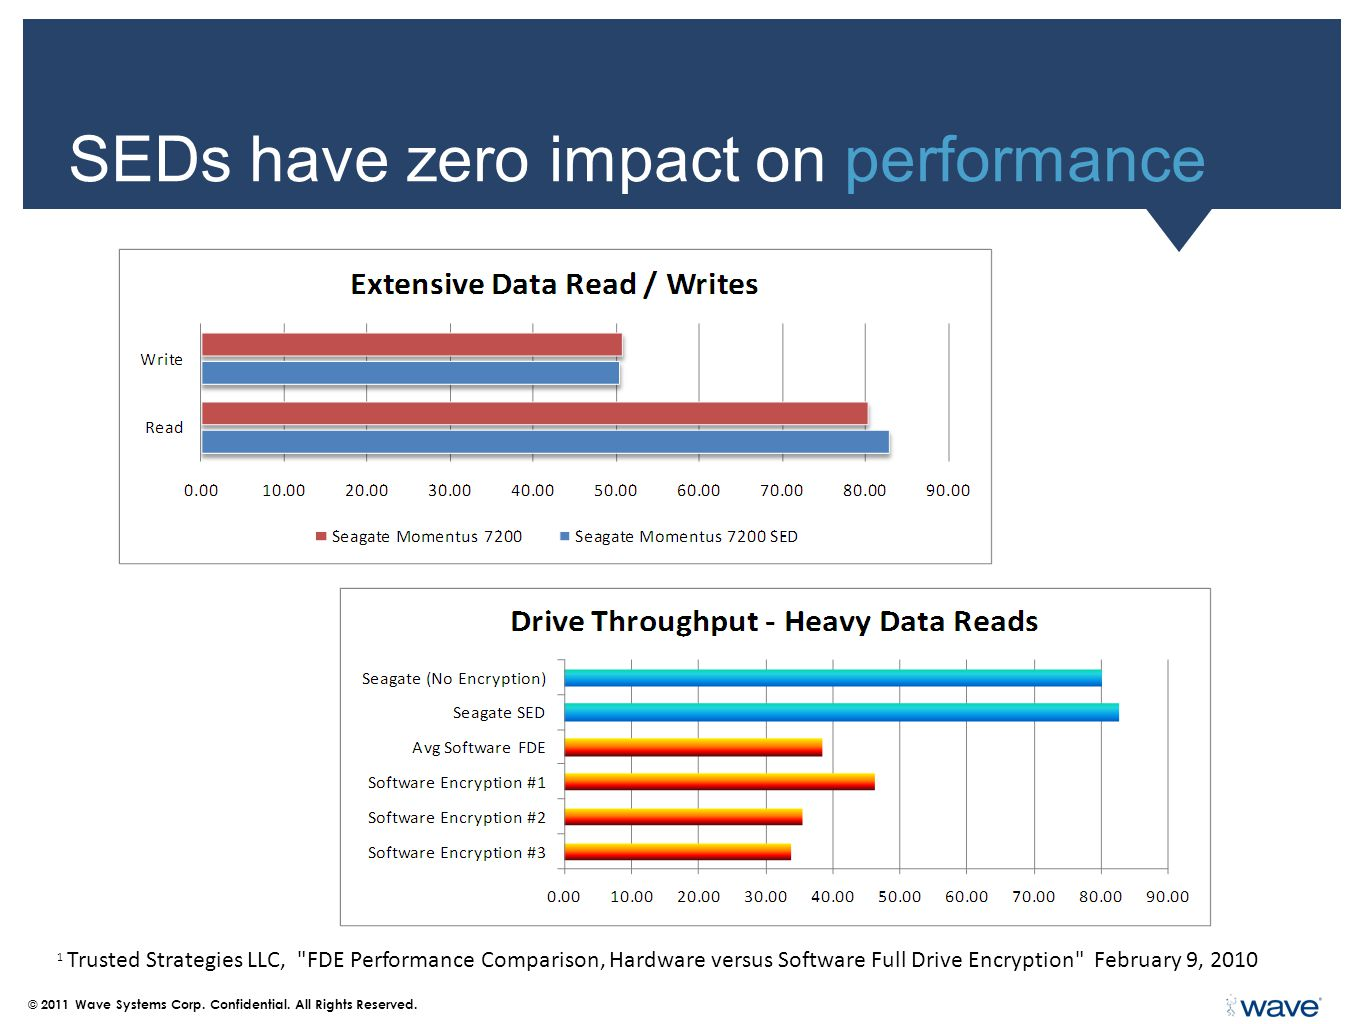 SEDs have zero impact on performance © 2011 Wave Systems Corp.